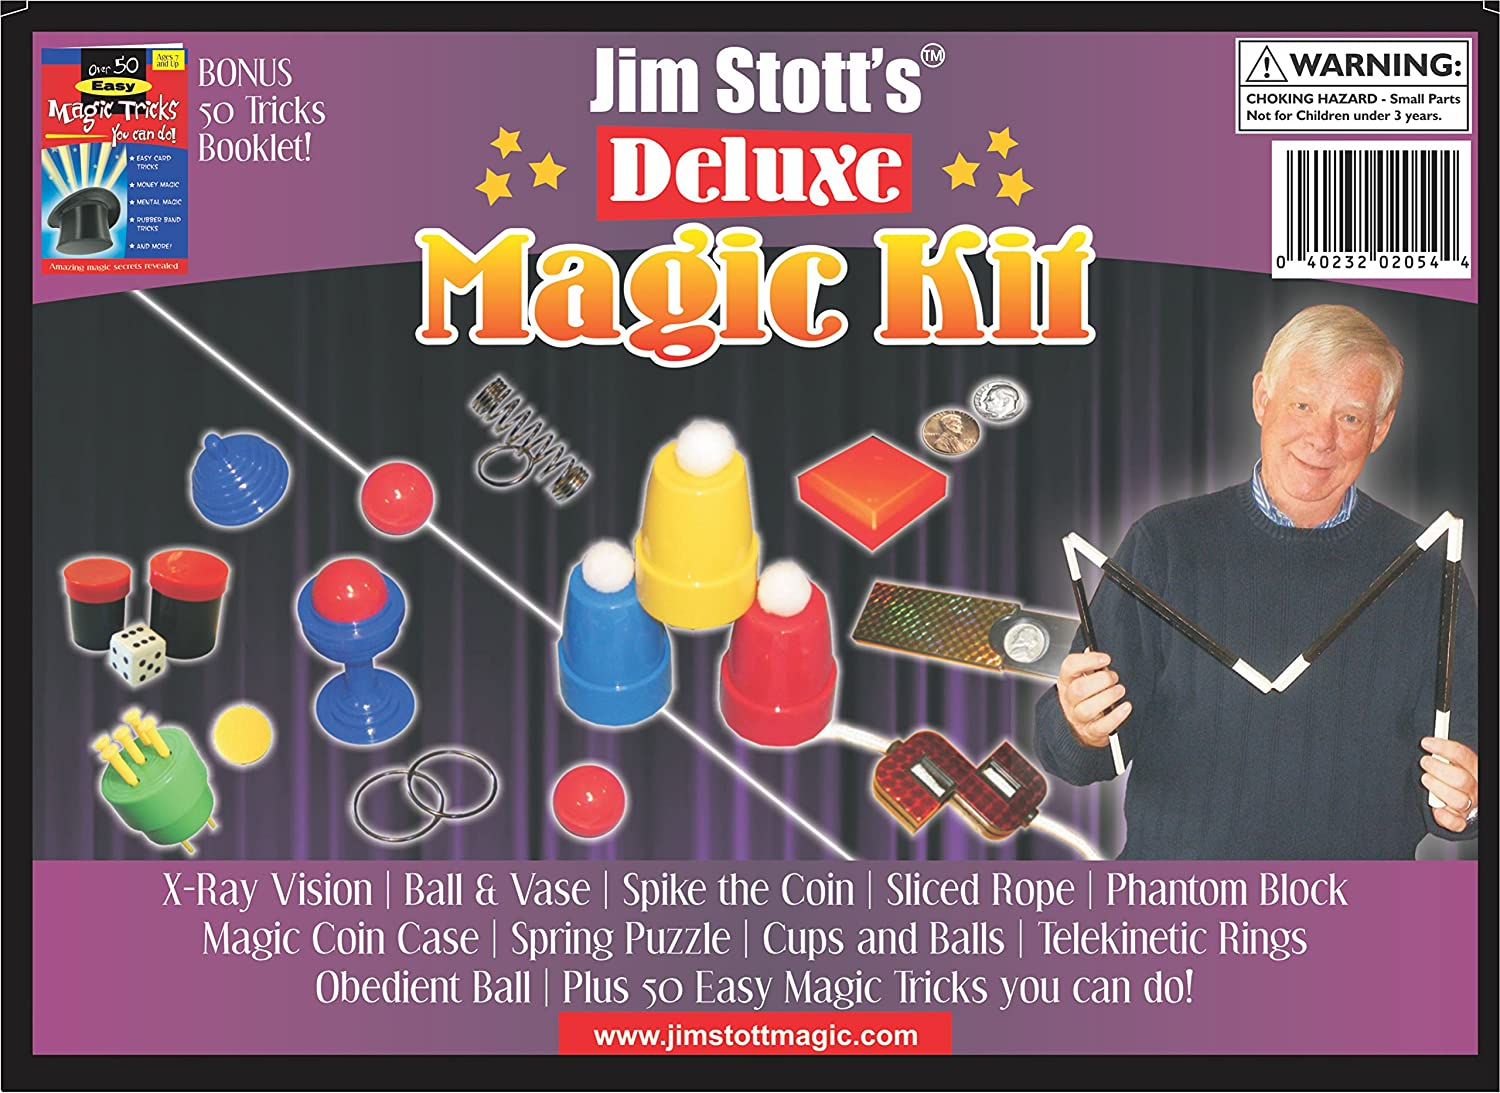 Jim Stott's 'Deluxe Magic Kit' Magic Set For Kids Boys and Girls Of All Ages Featuring Cups and Balls Ball and Vase Spiked Coin Penny to Dime Instructional Videos and More